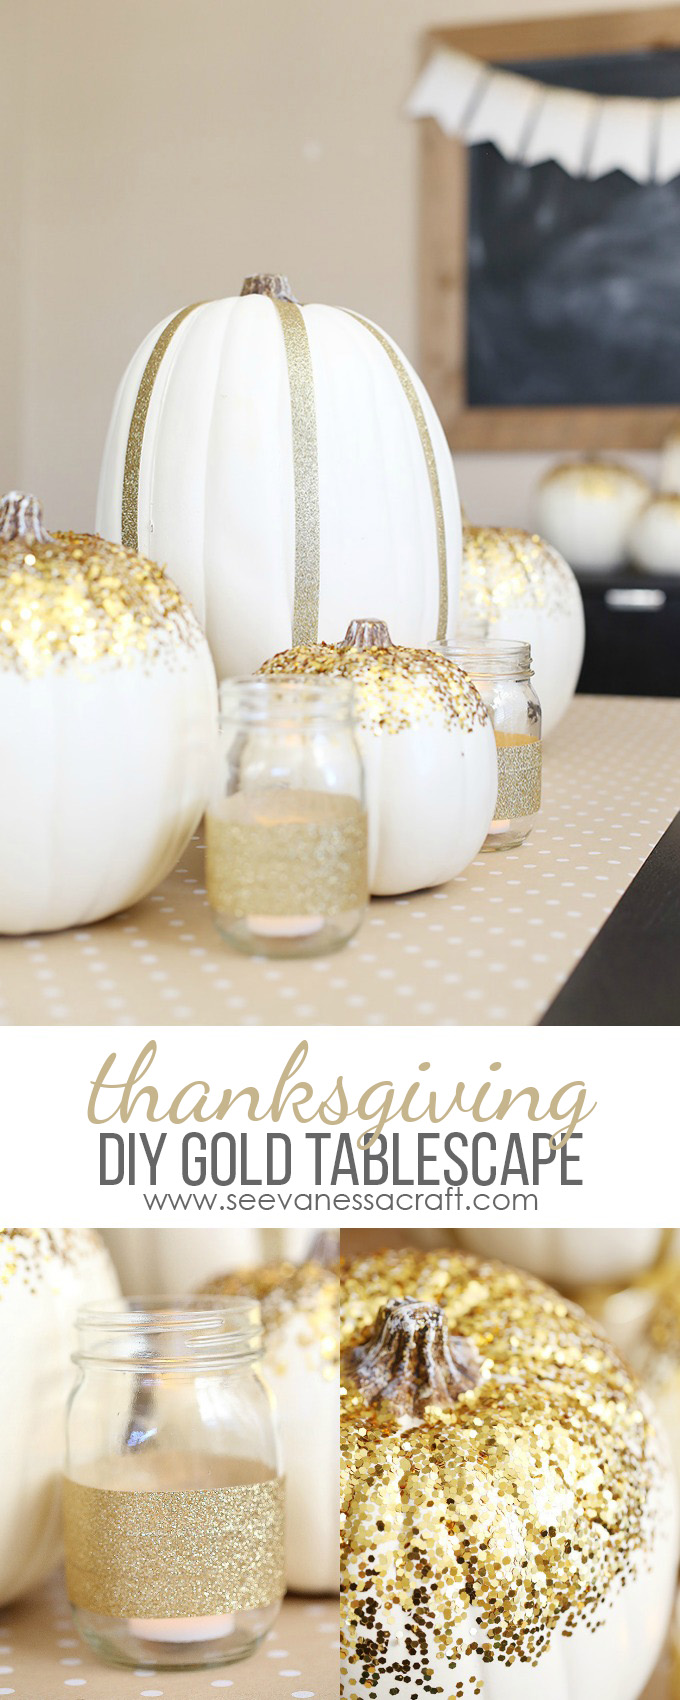 thanksgiving-gold-tablescape-idea